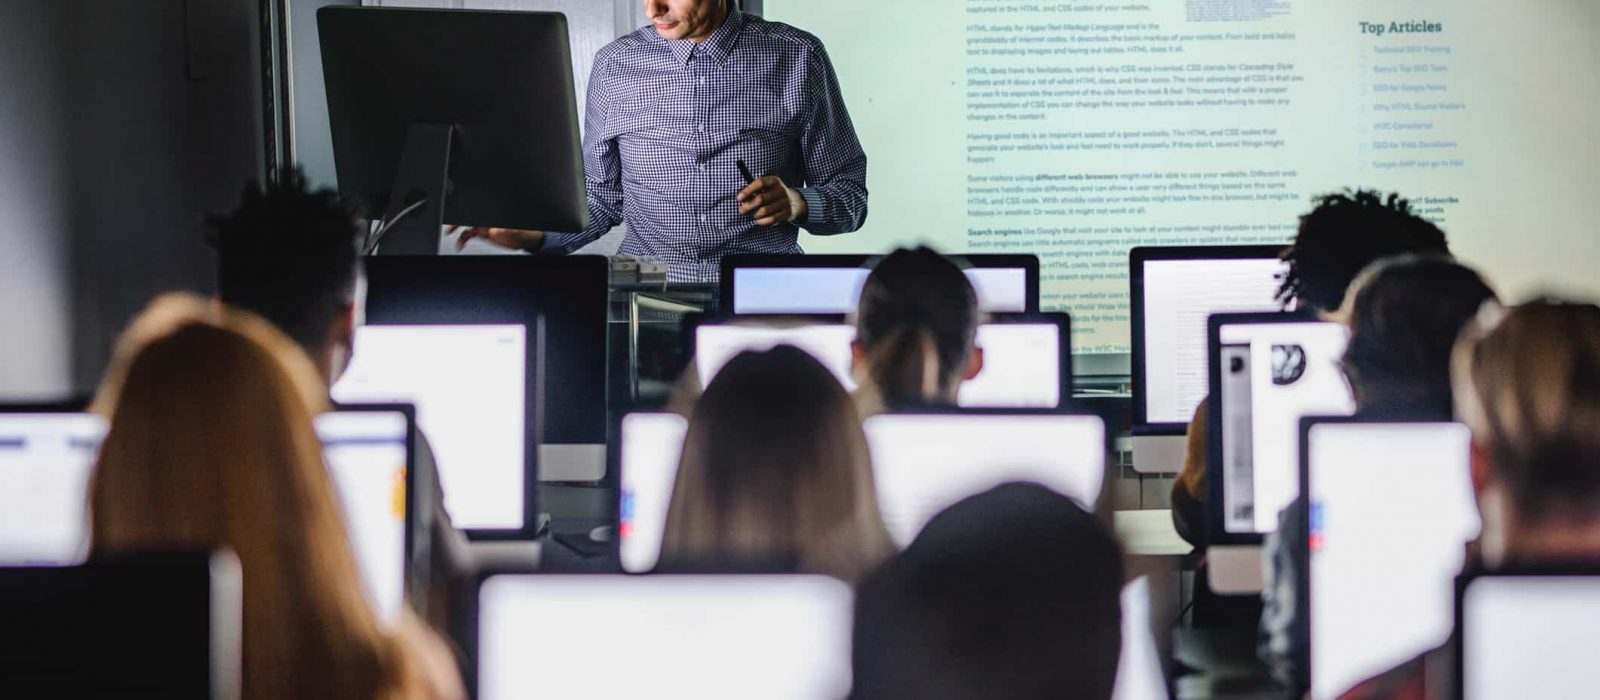 students on their computers at school